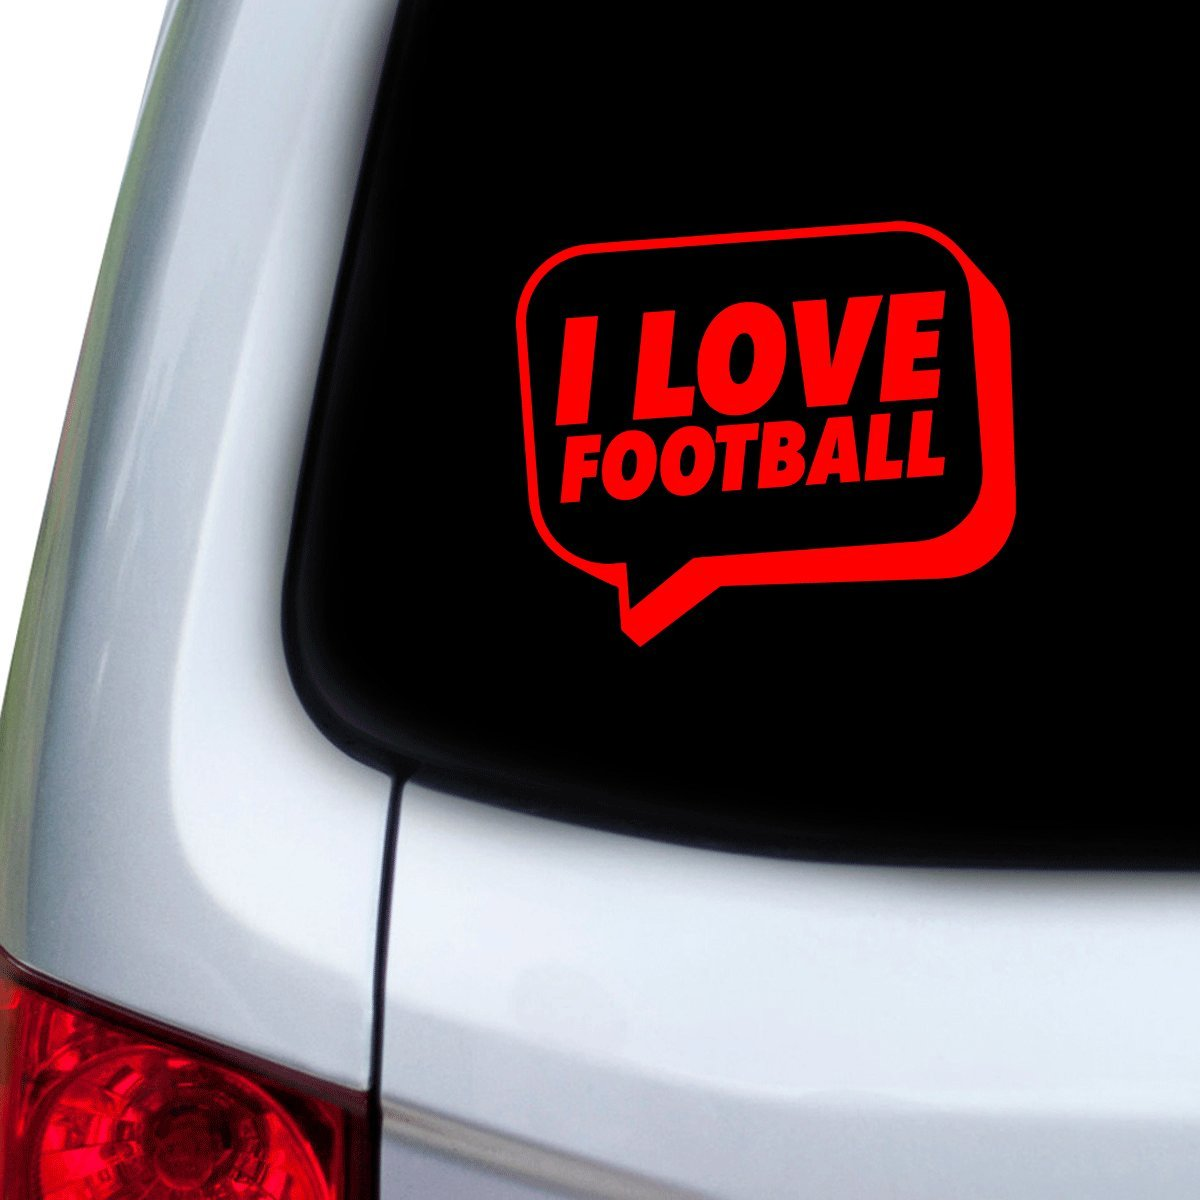 Red Hoods Doors StickAny Car and Auto Decal Series I Love Football Speech Bubble Sticker for Windows